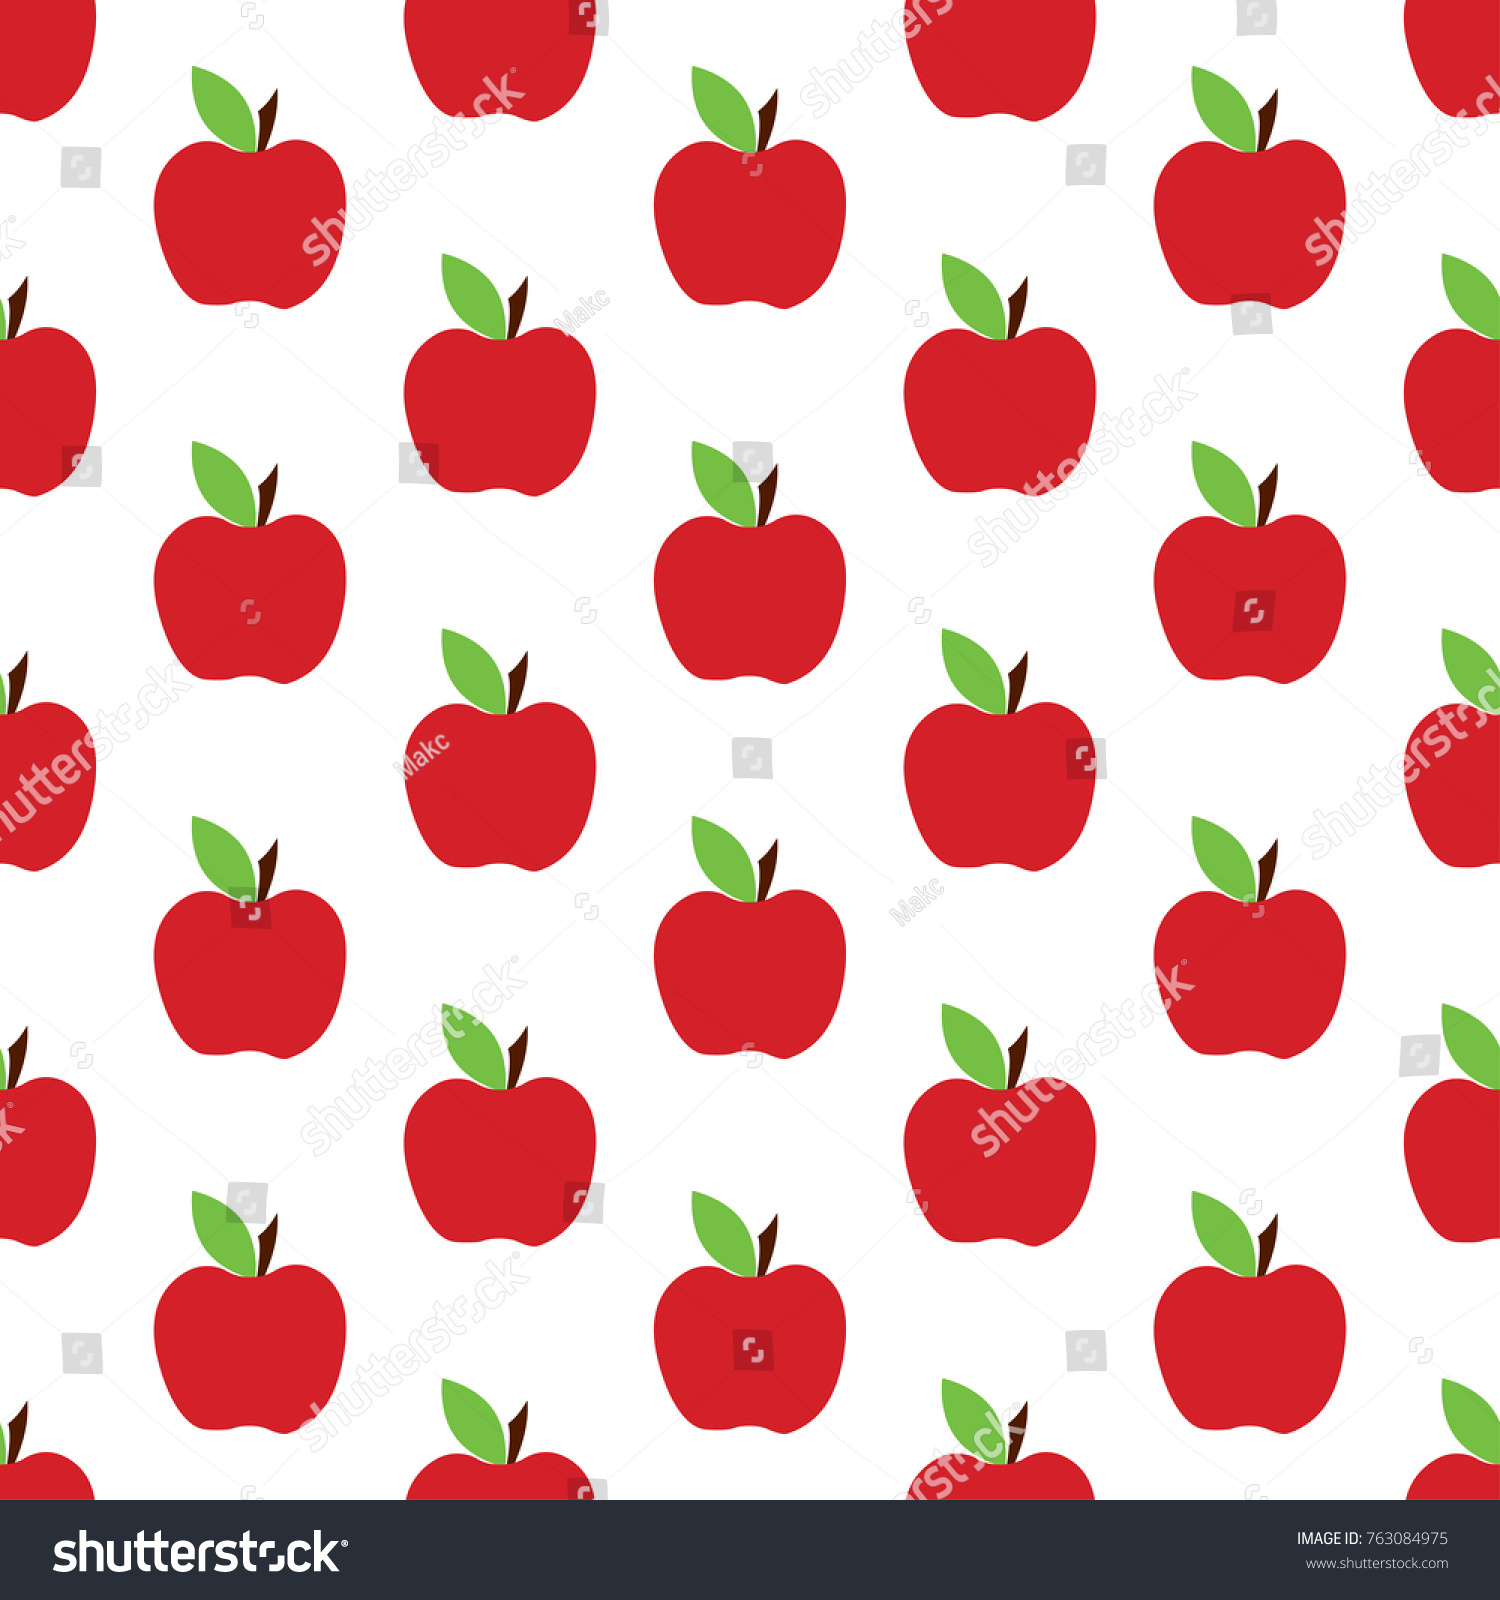 red apple seamless pattern background cute stock vector hd (royalty